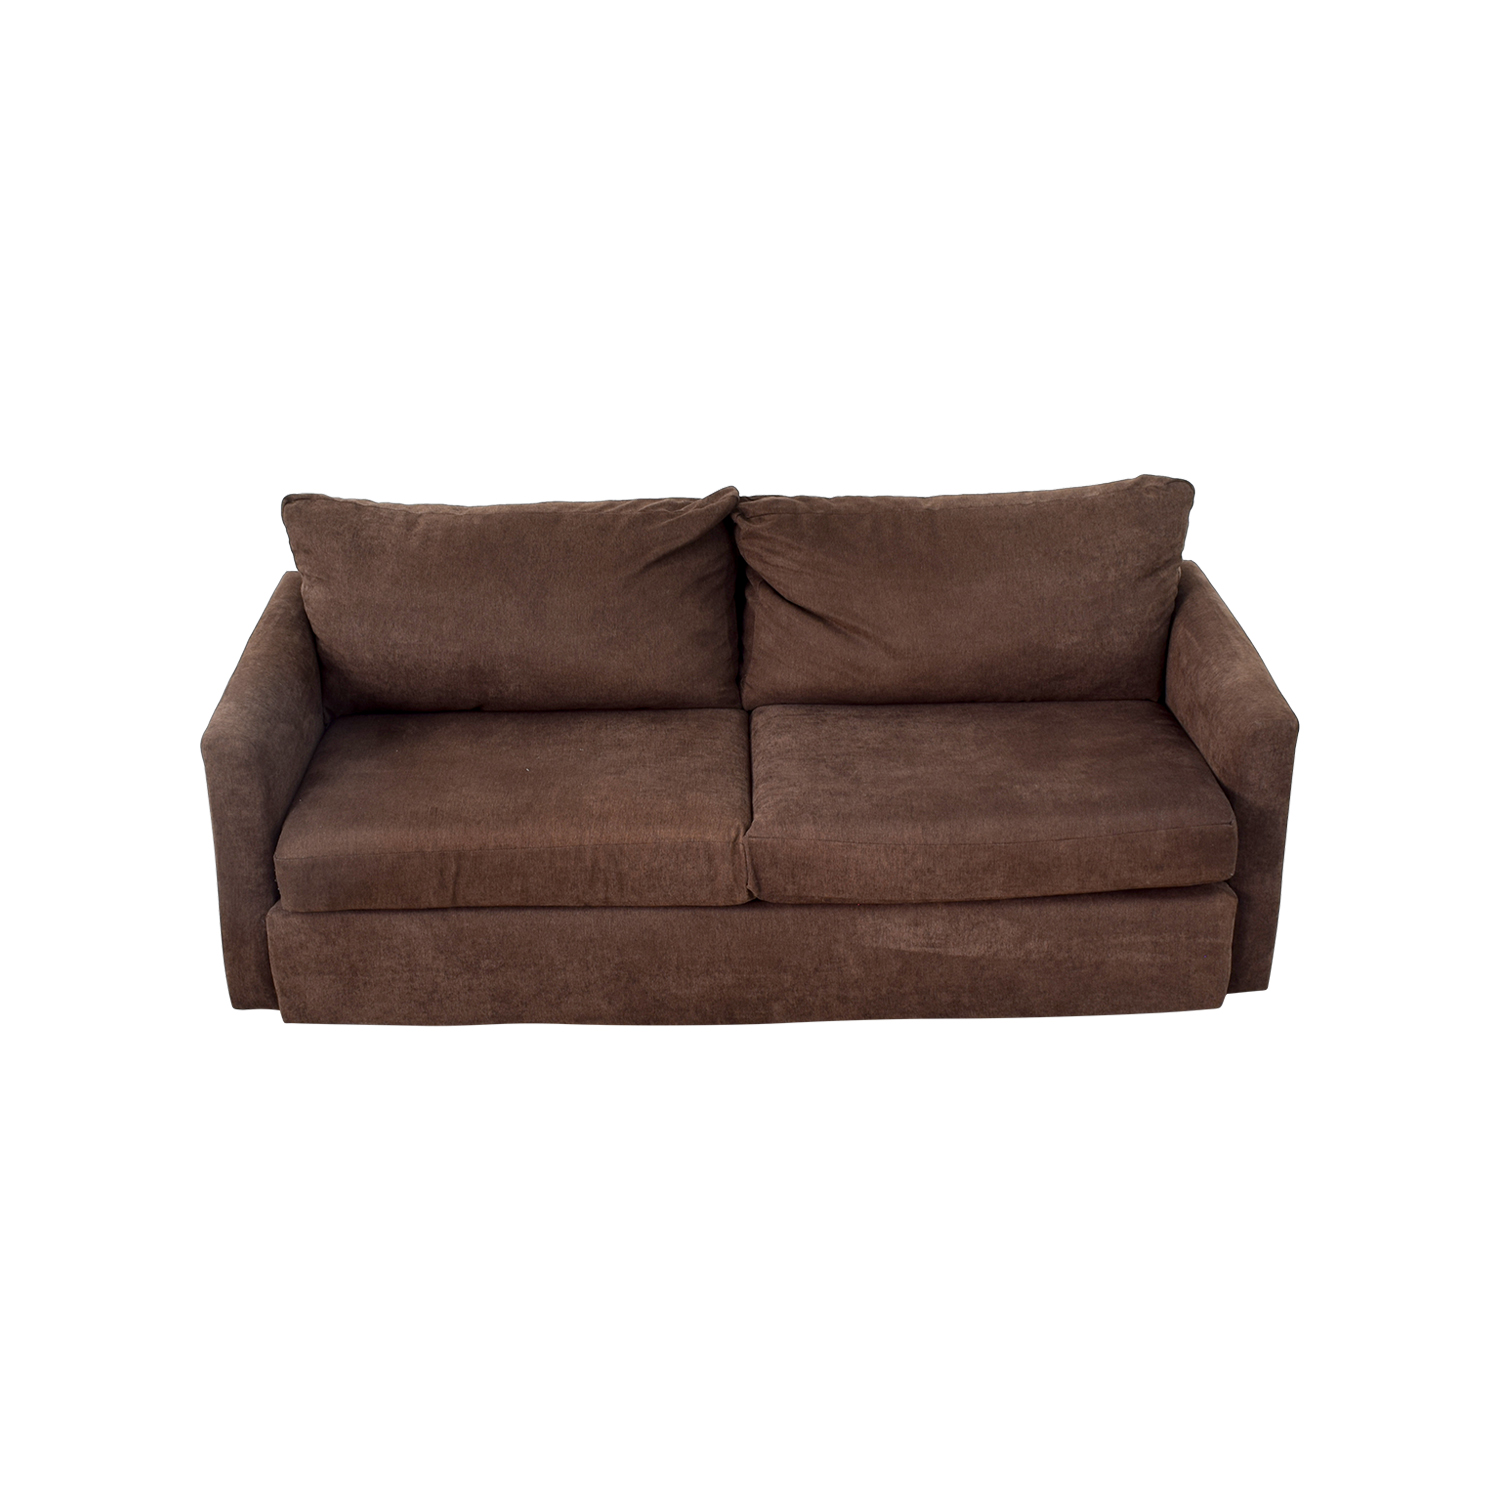 bobs furniture sofa recliner sets south africa 67 off bob 39s brown loveseat